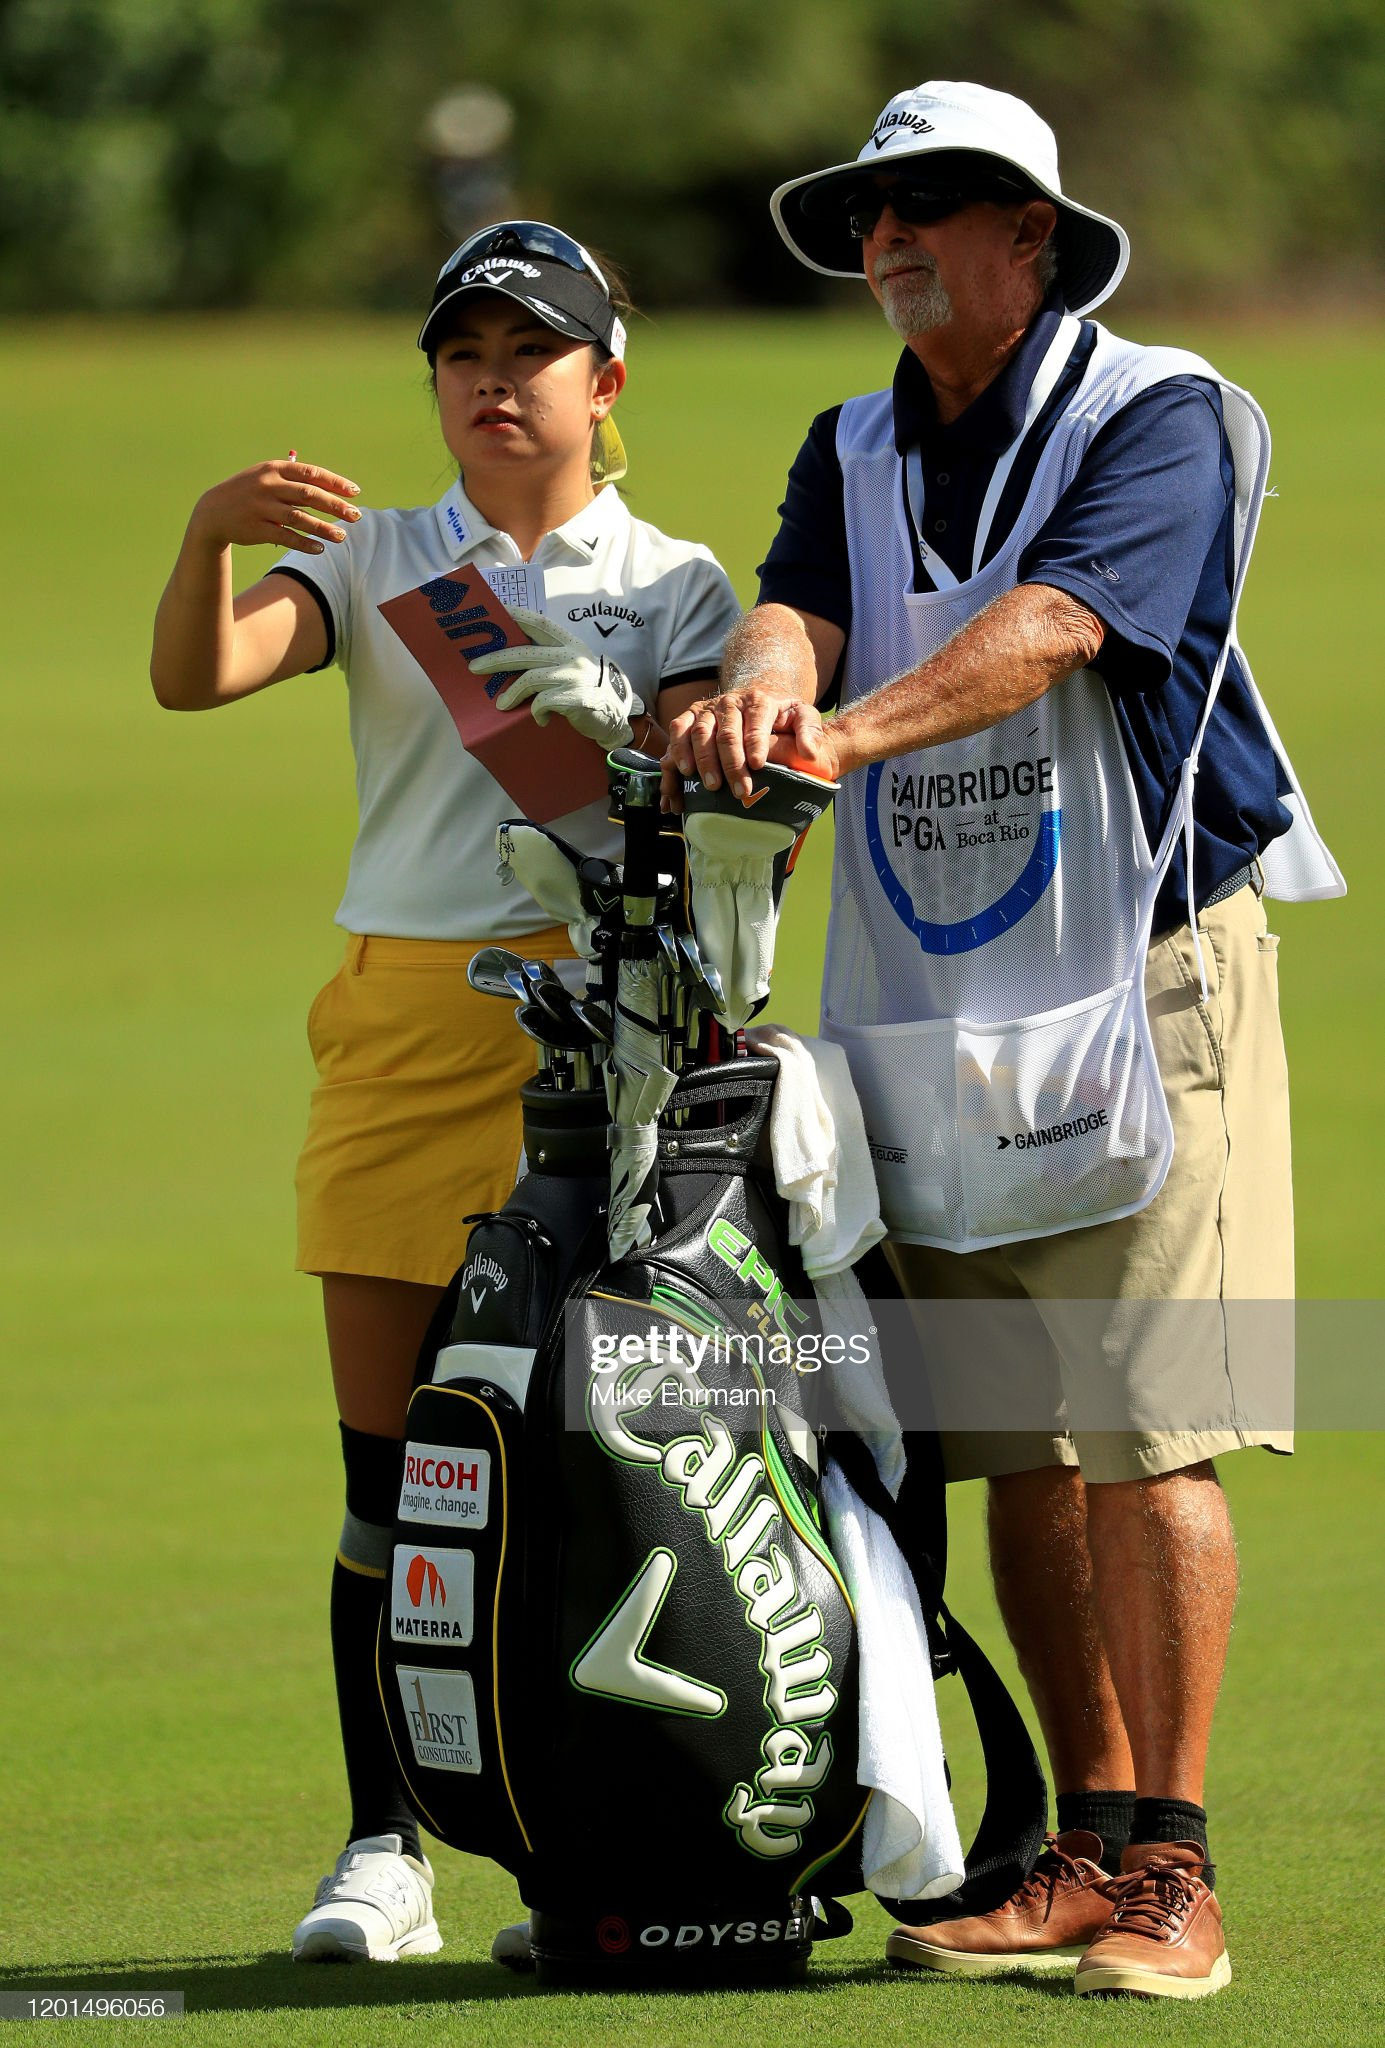 https://media.gettyimages.com/photos/yui-kawamoto-of-japan-prepares-to-hit-her-approach-shot-on-the-11th-picture-id1201496056?s=2048x2048